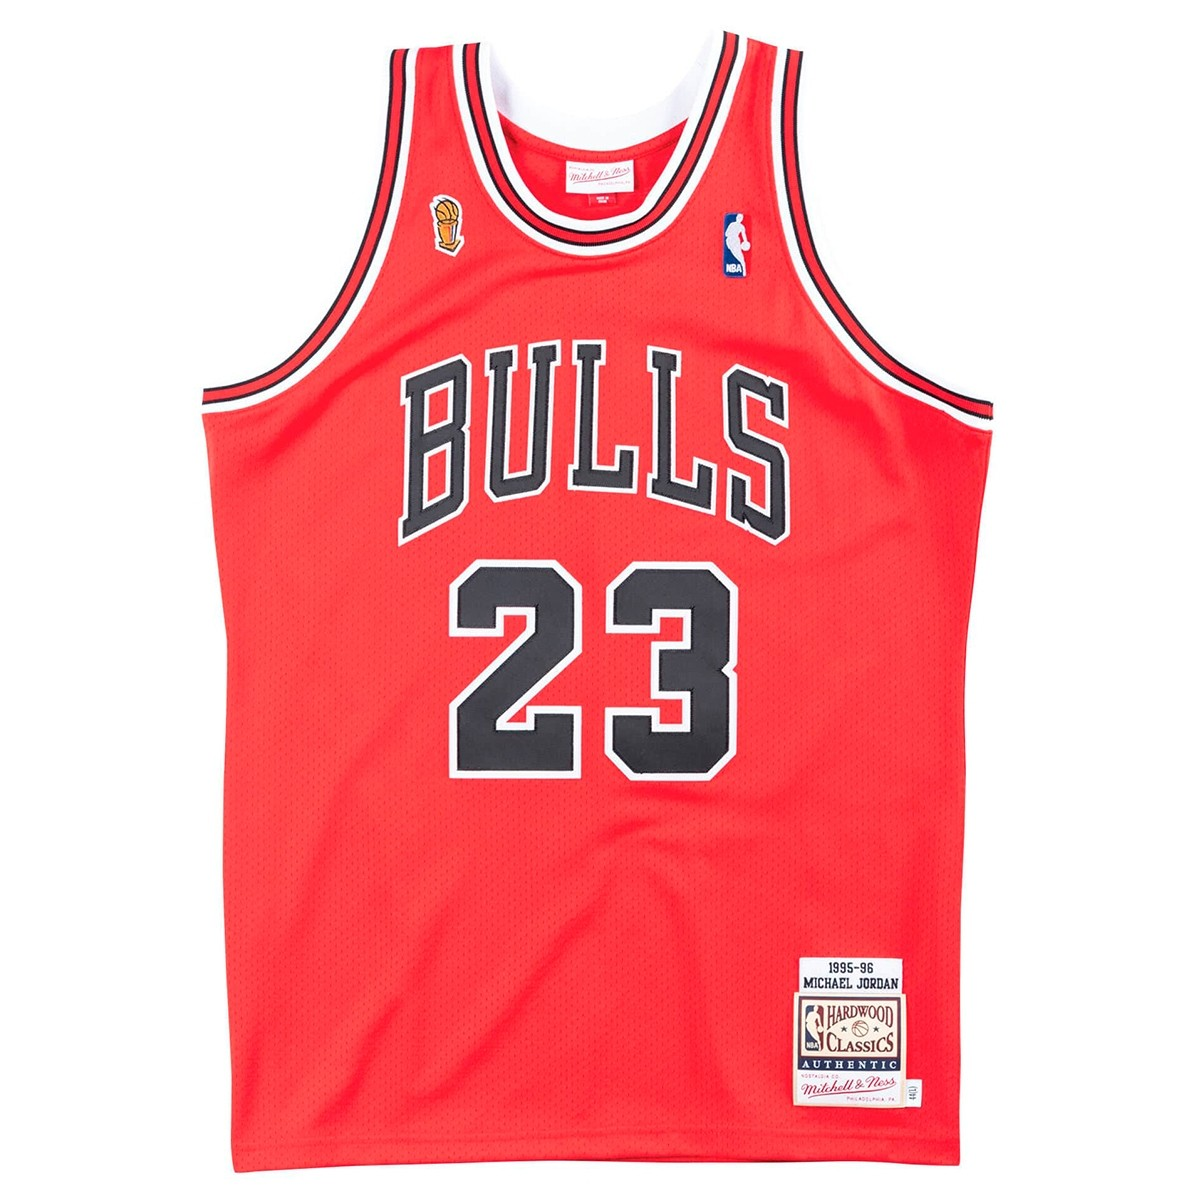 Mitchell & Ness Jordan Authentic Jersey 'Finals 95-96 Away'-CBUSCAR9-5MJO